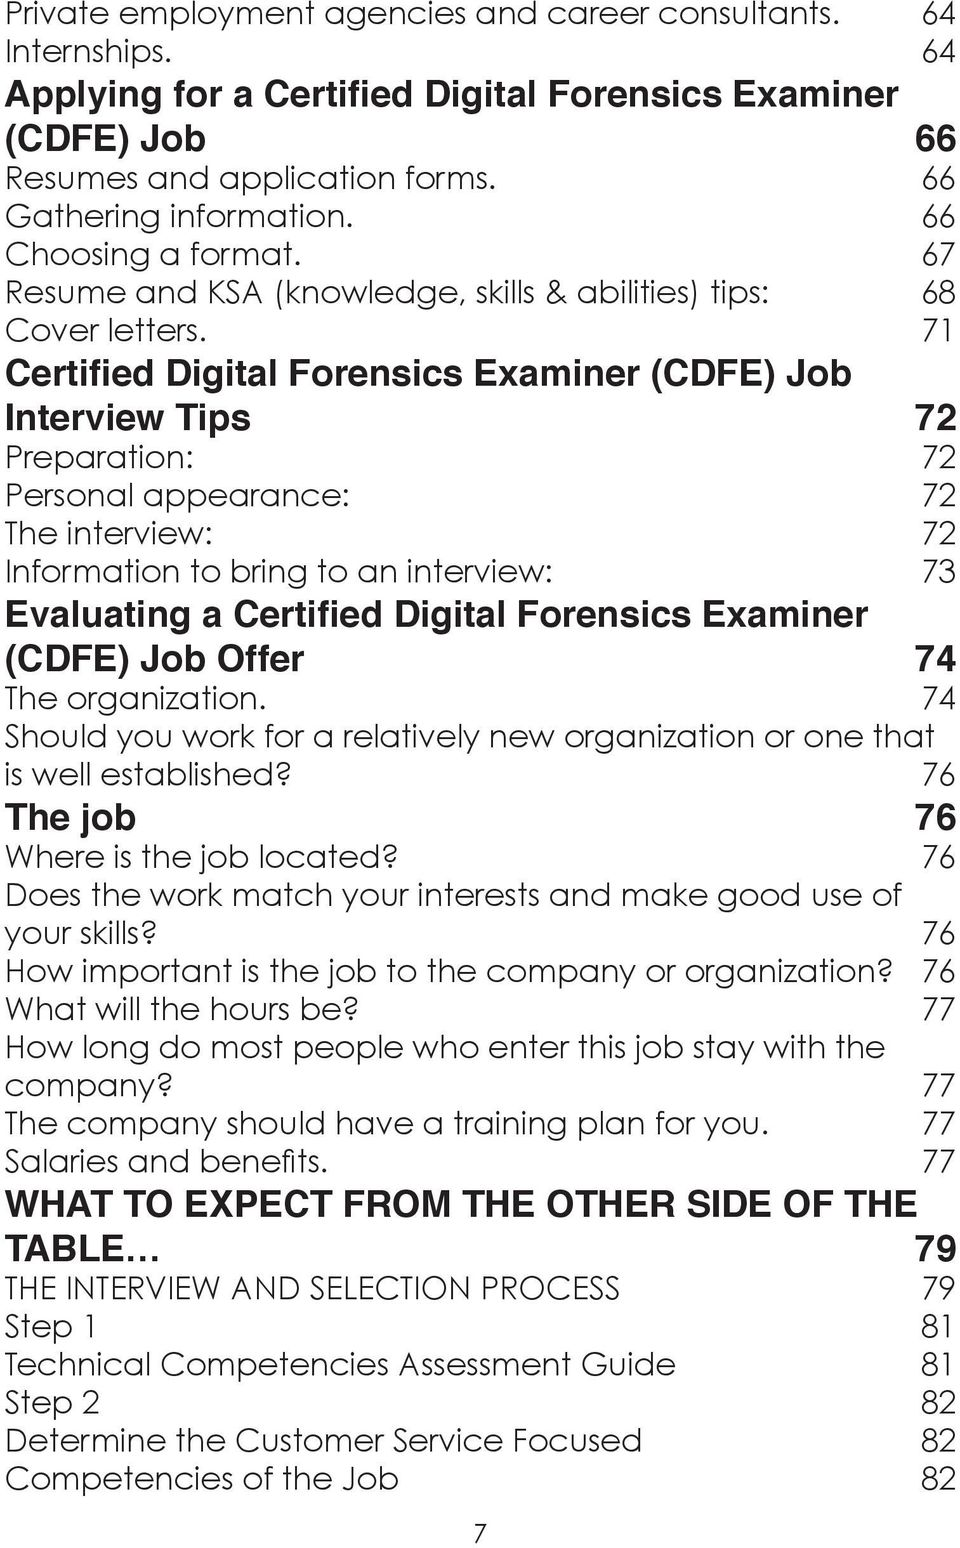 71 Certified Digital Forensics Examiner (CDFE) Job Interview Tips 72 Preparation: 72 Personal appearance: 72 The interview: 72 Information to bring to an interview: 73 Evaluating a Certified Digital